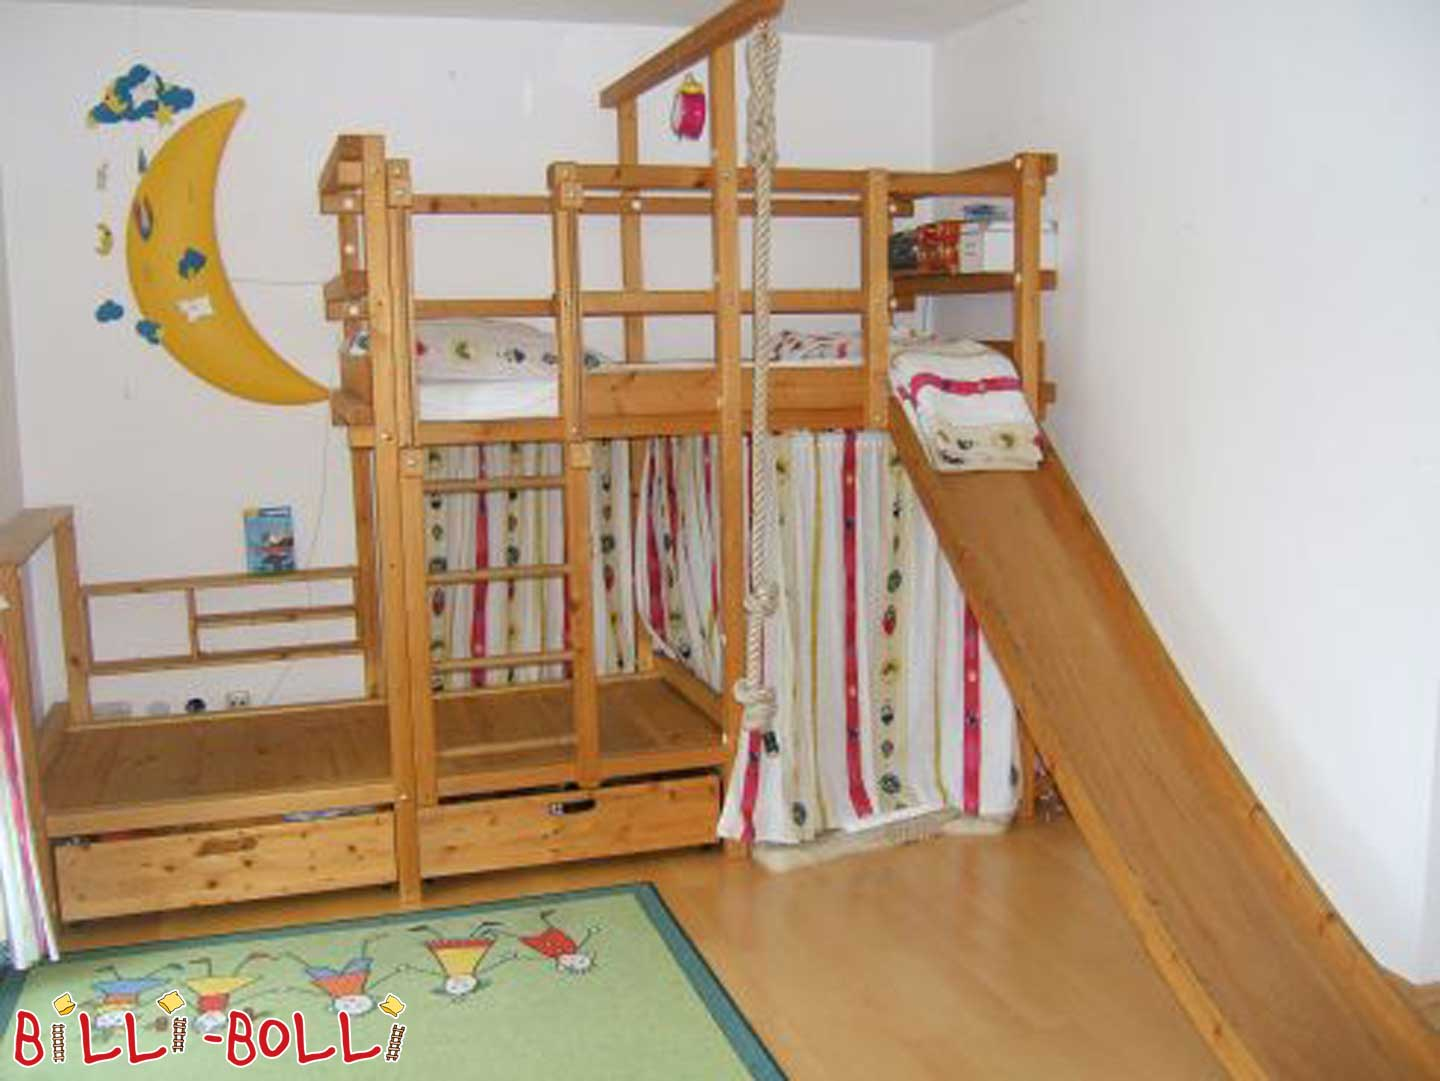 "Billi-Bolli bed ""offset"" (slide for loft bed)"